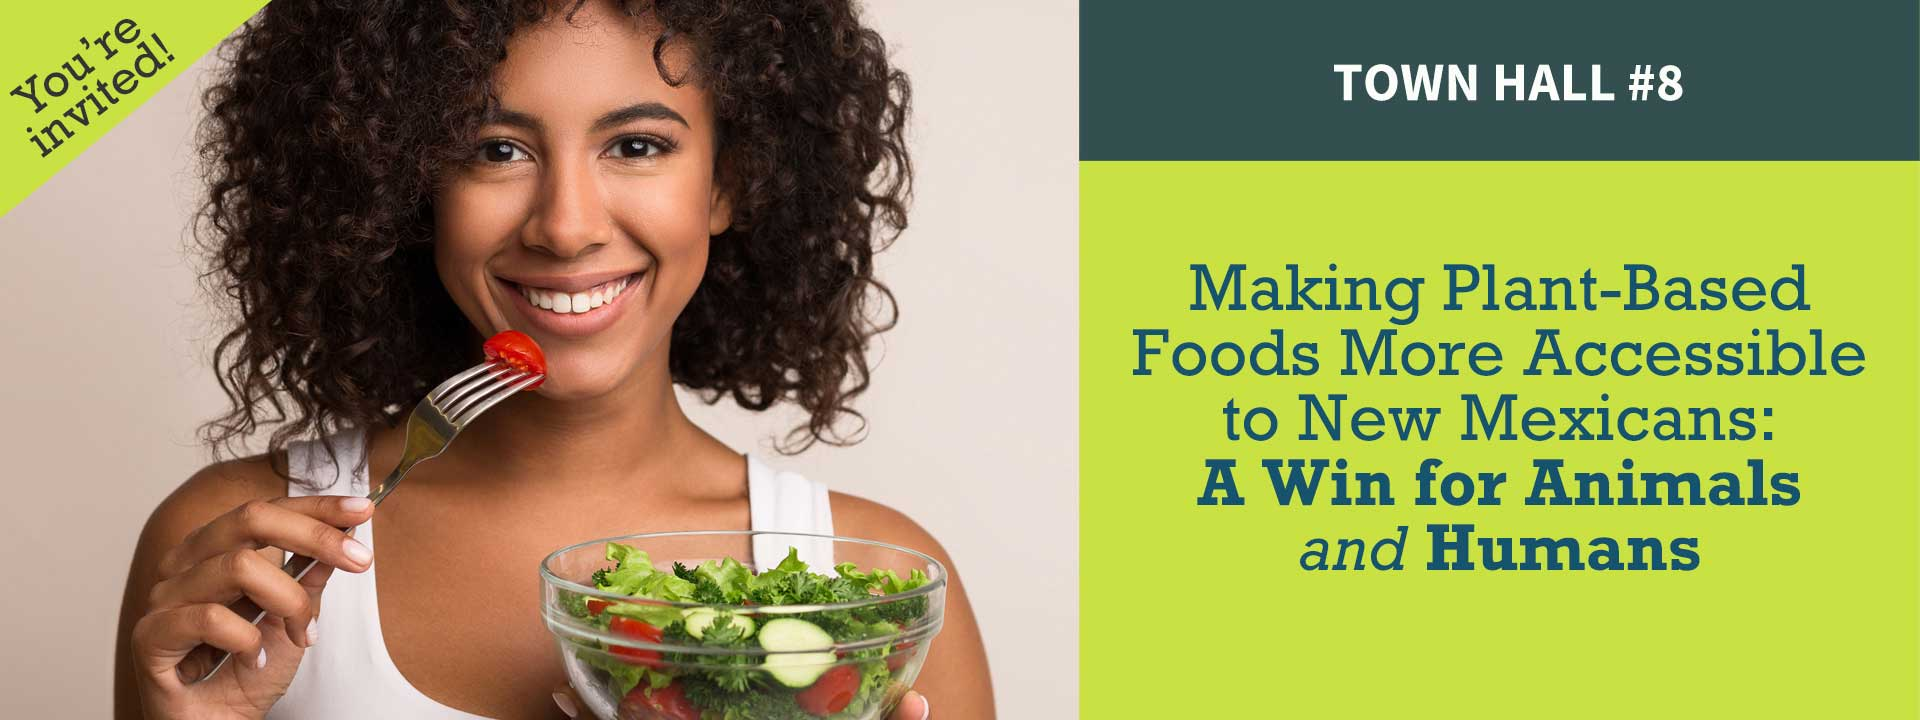 Virtual Town Hall #8 - Making Plant-Based Foods More Accessible to New Mexicans: A Win for Animals and Humans